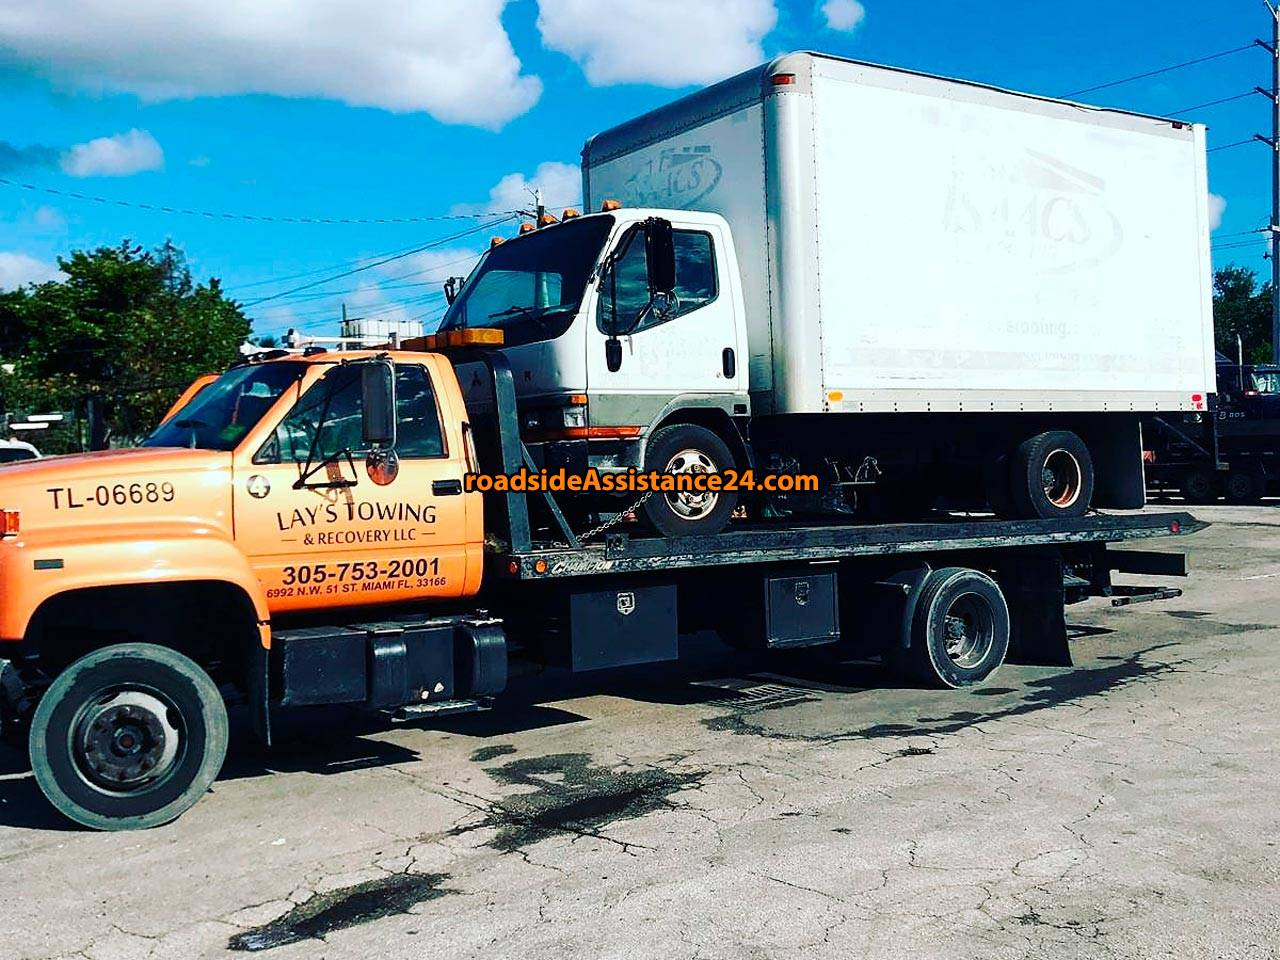 LAY'S TOWING & RECOVERY LLC